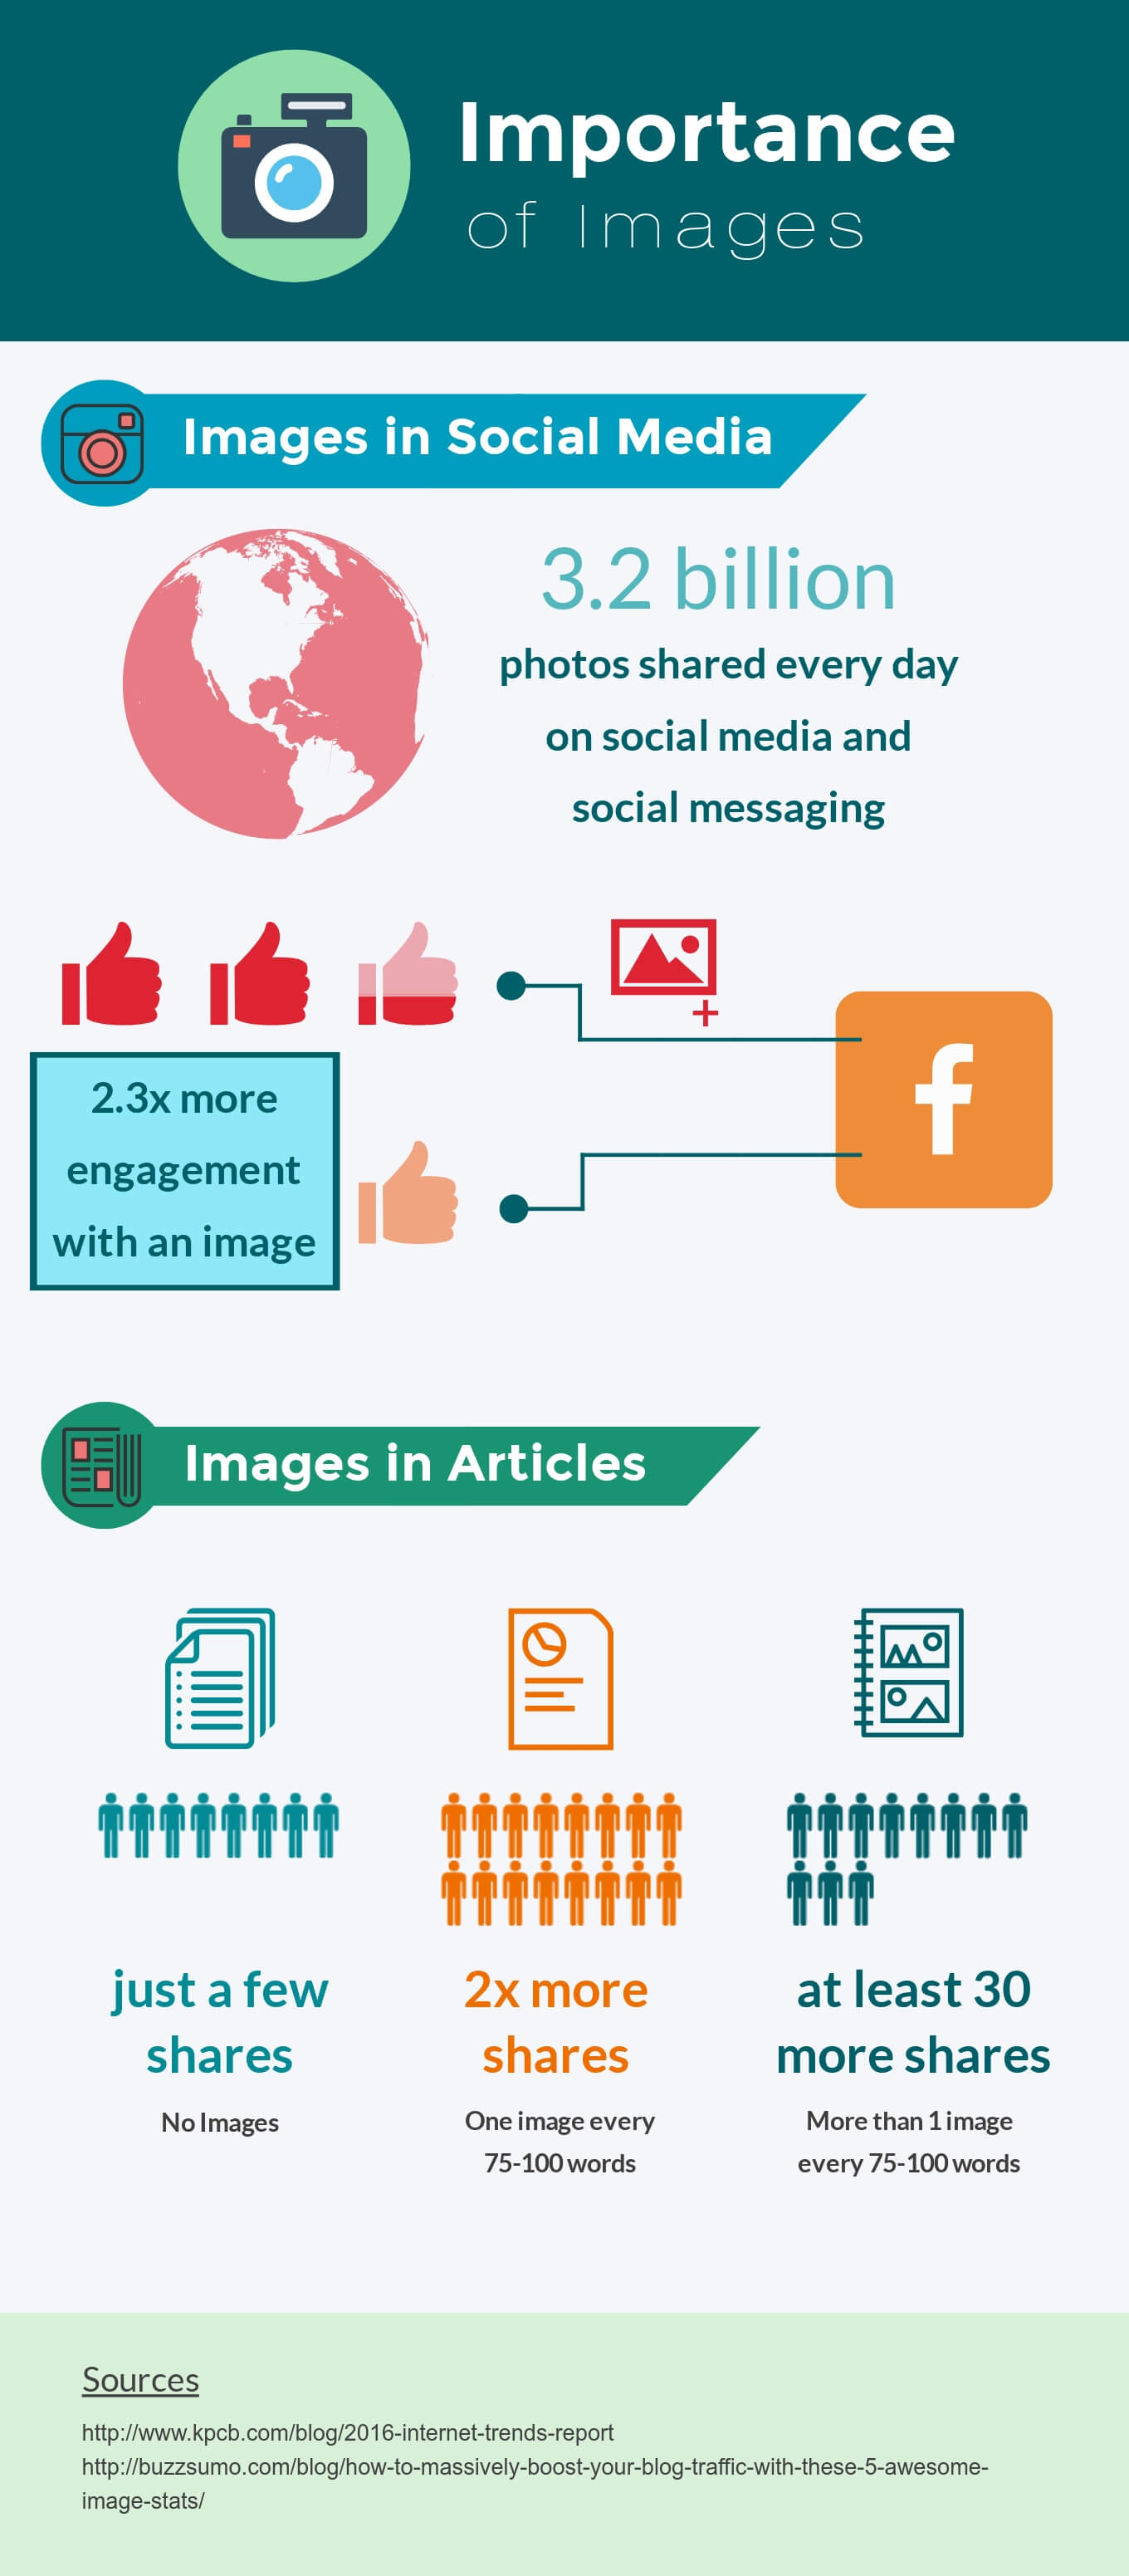 The importance of images in articles and social media